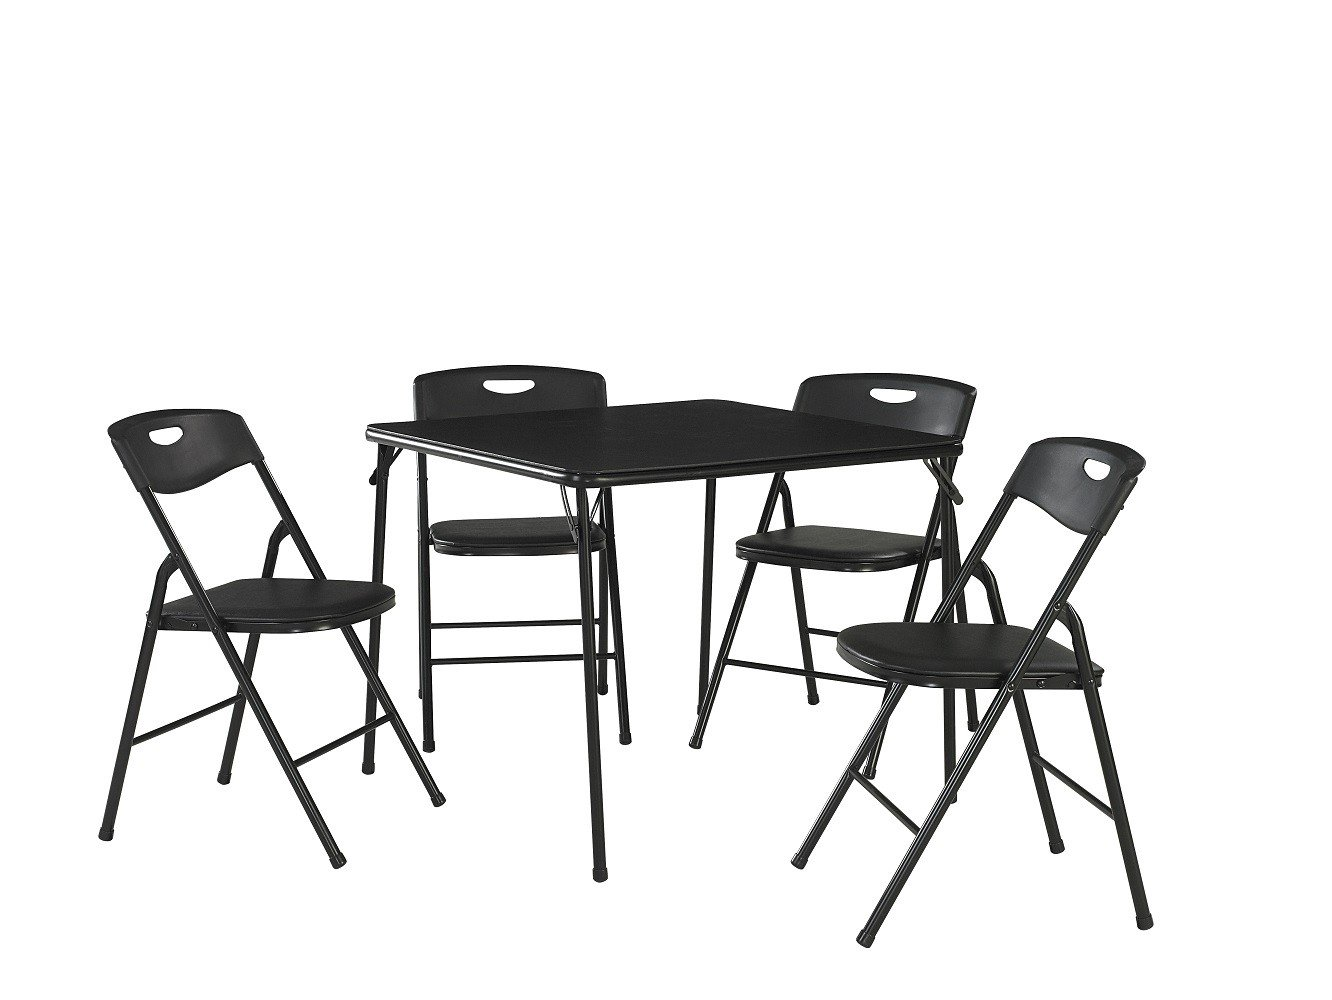 Cosco 5-Piece Folding Table and Chair Set, Black by Cosco